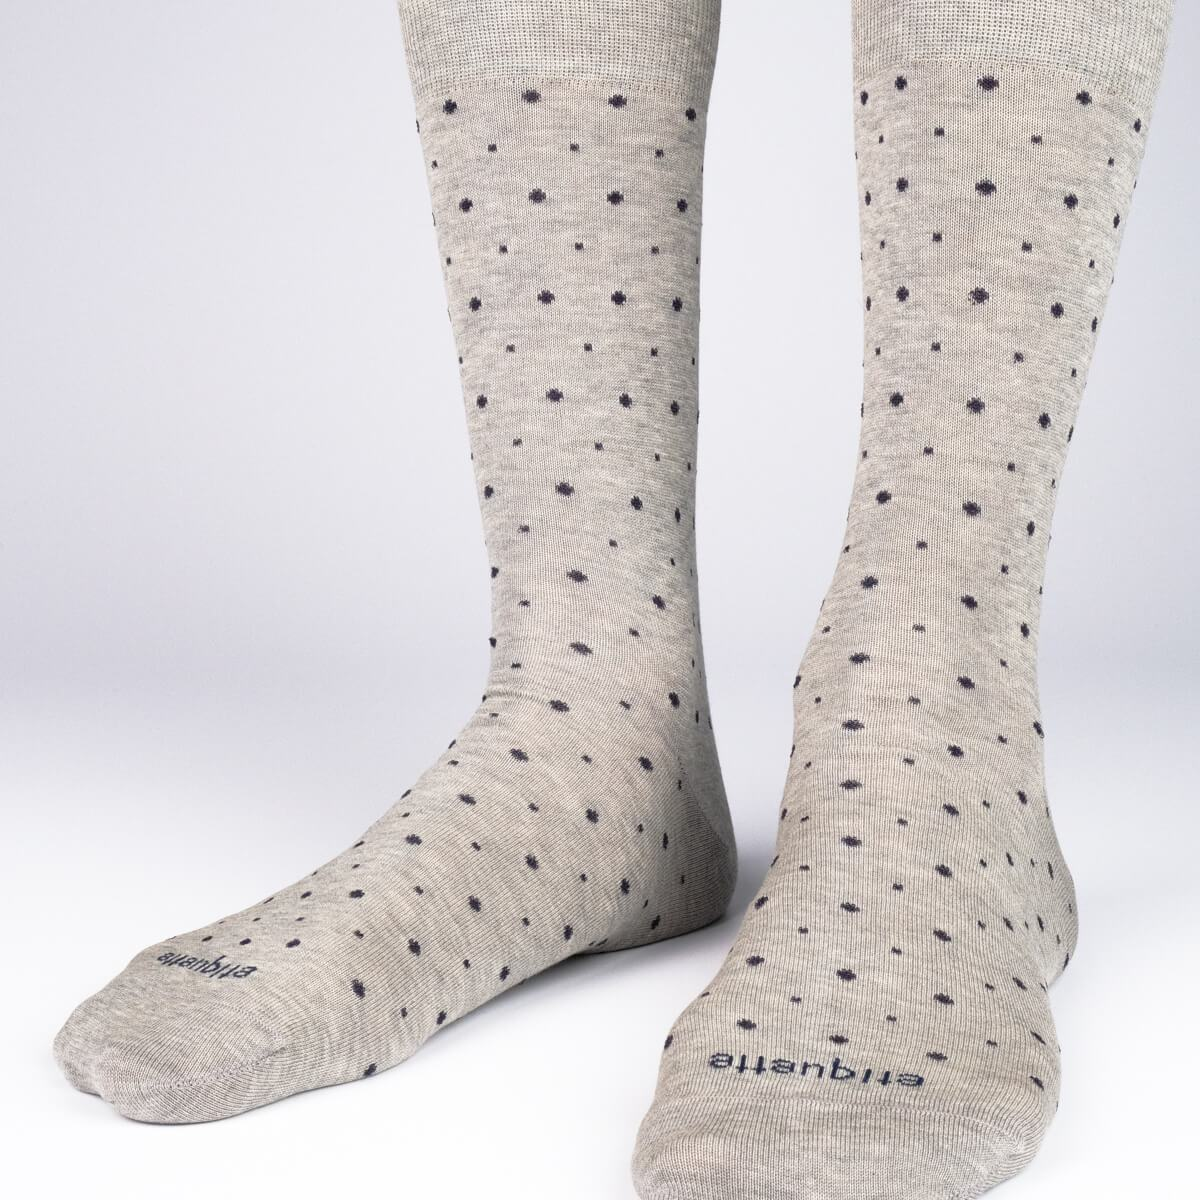 Ball Point - Grey - Mens Socks | Etiquette Clothiers Global Official